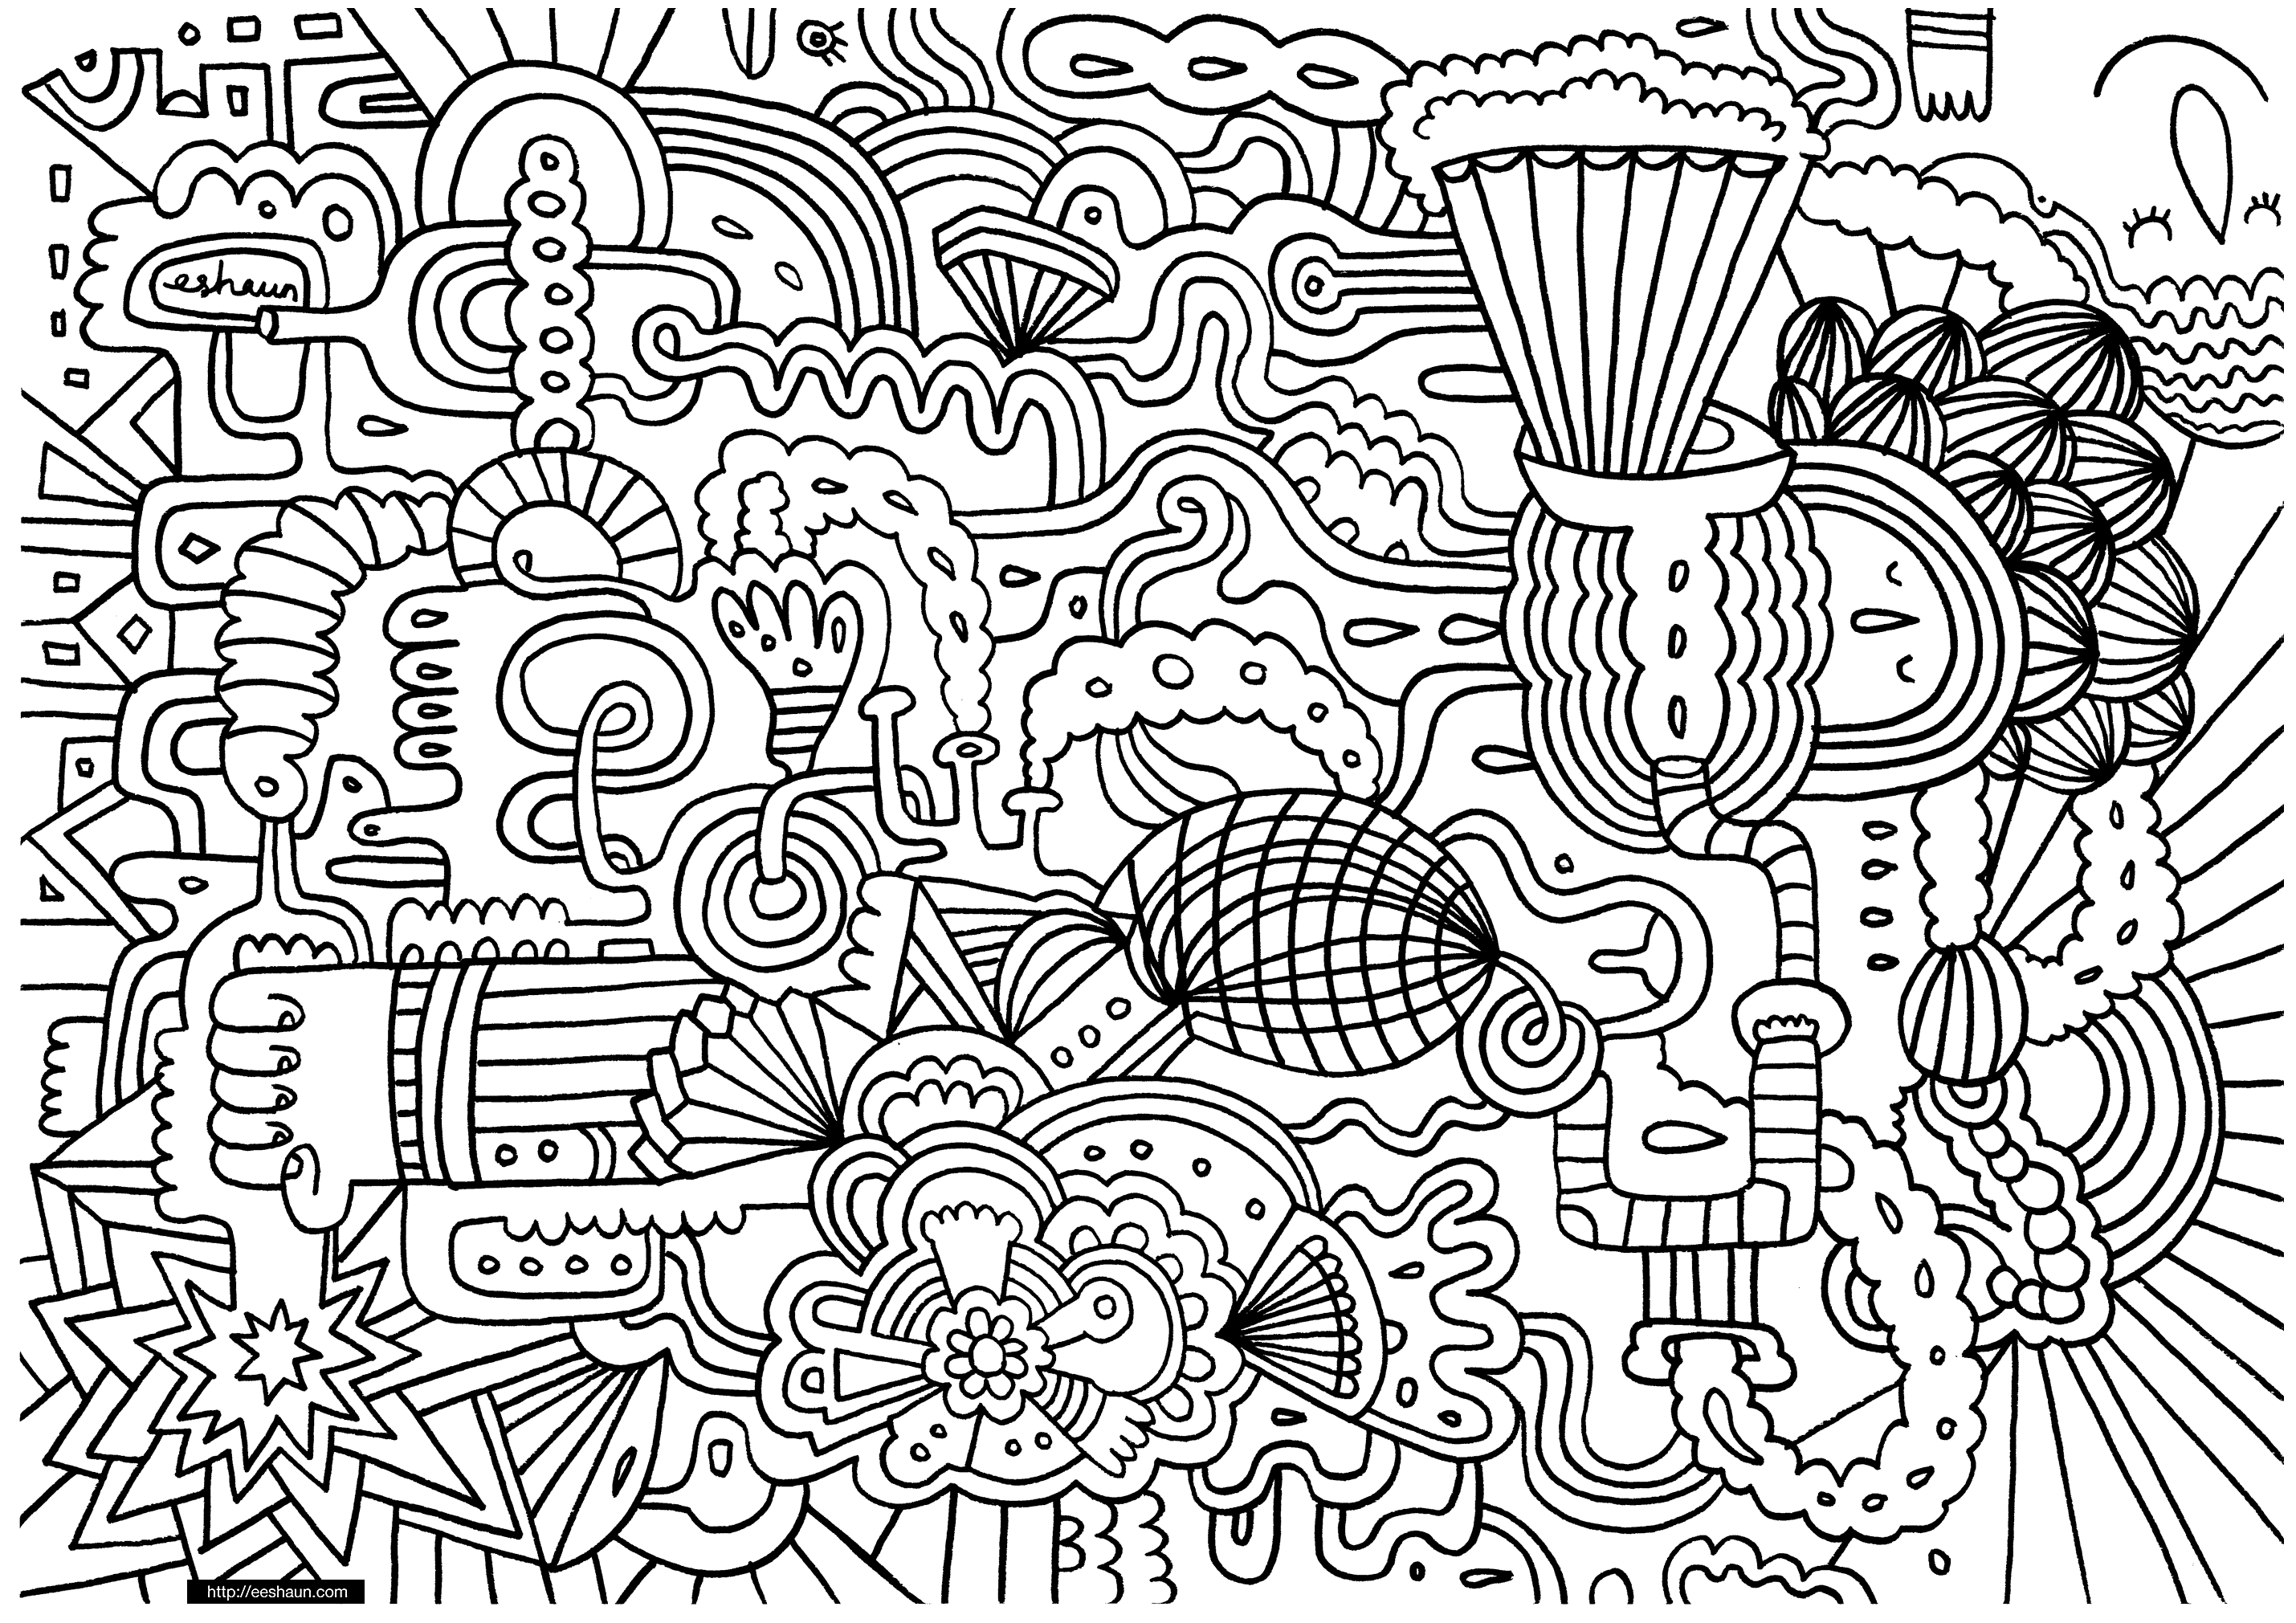 doodle art colouring incredible city doodle doodle art doodling adult doodle colouring art